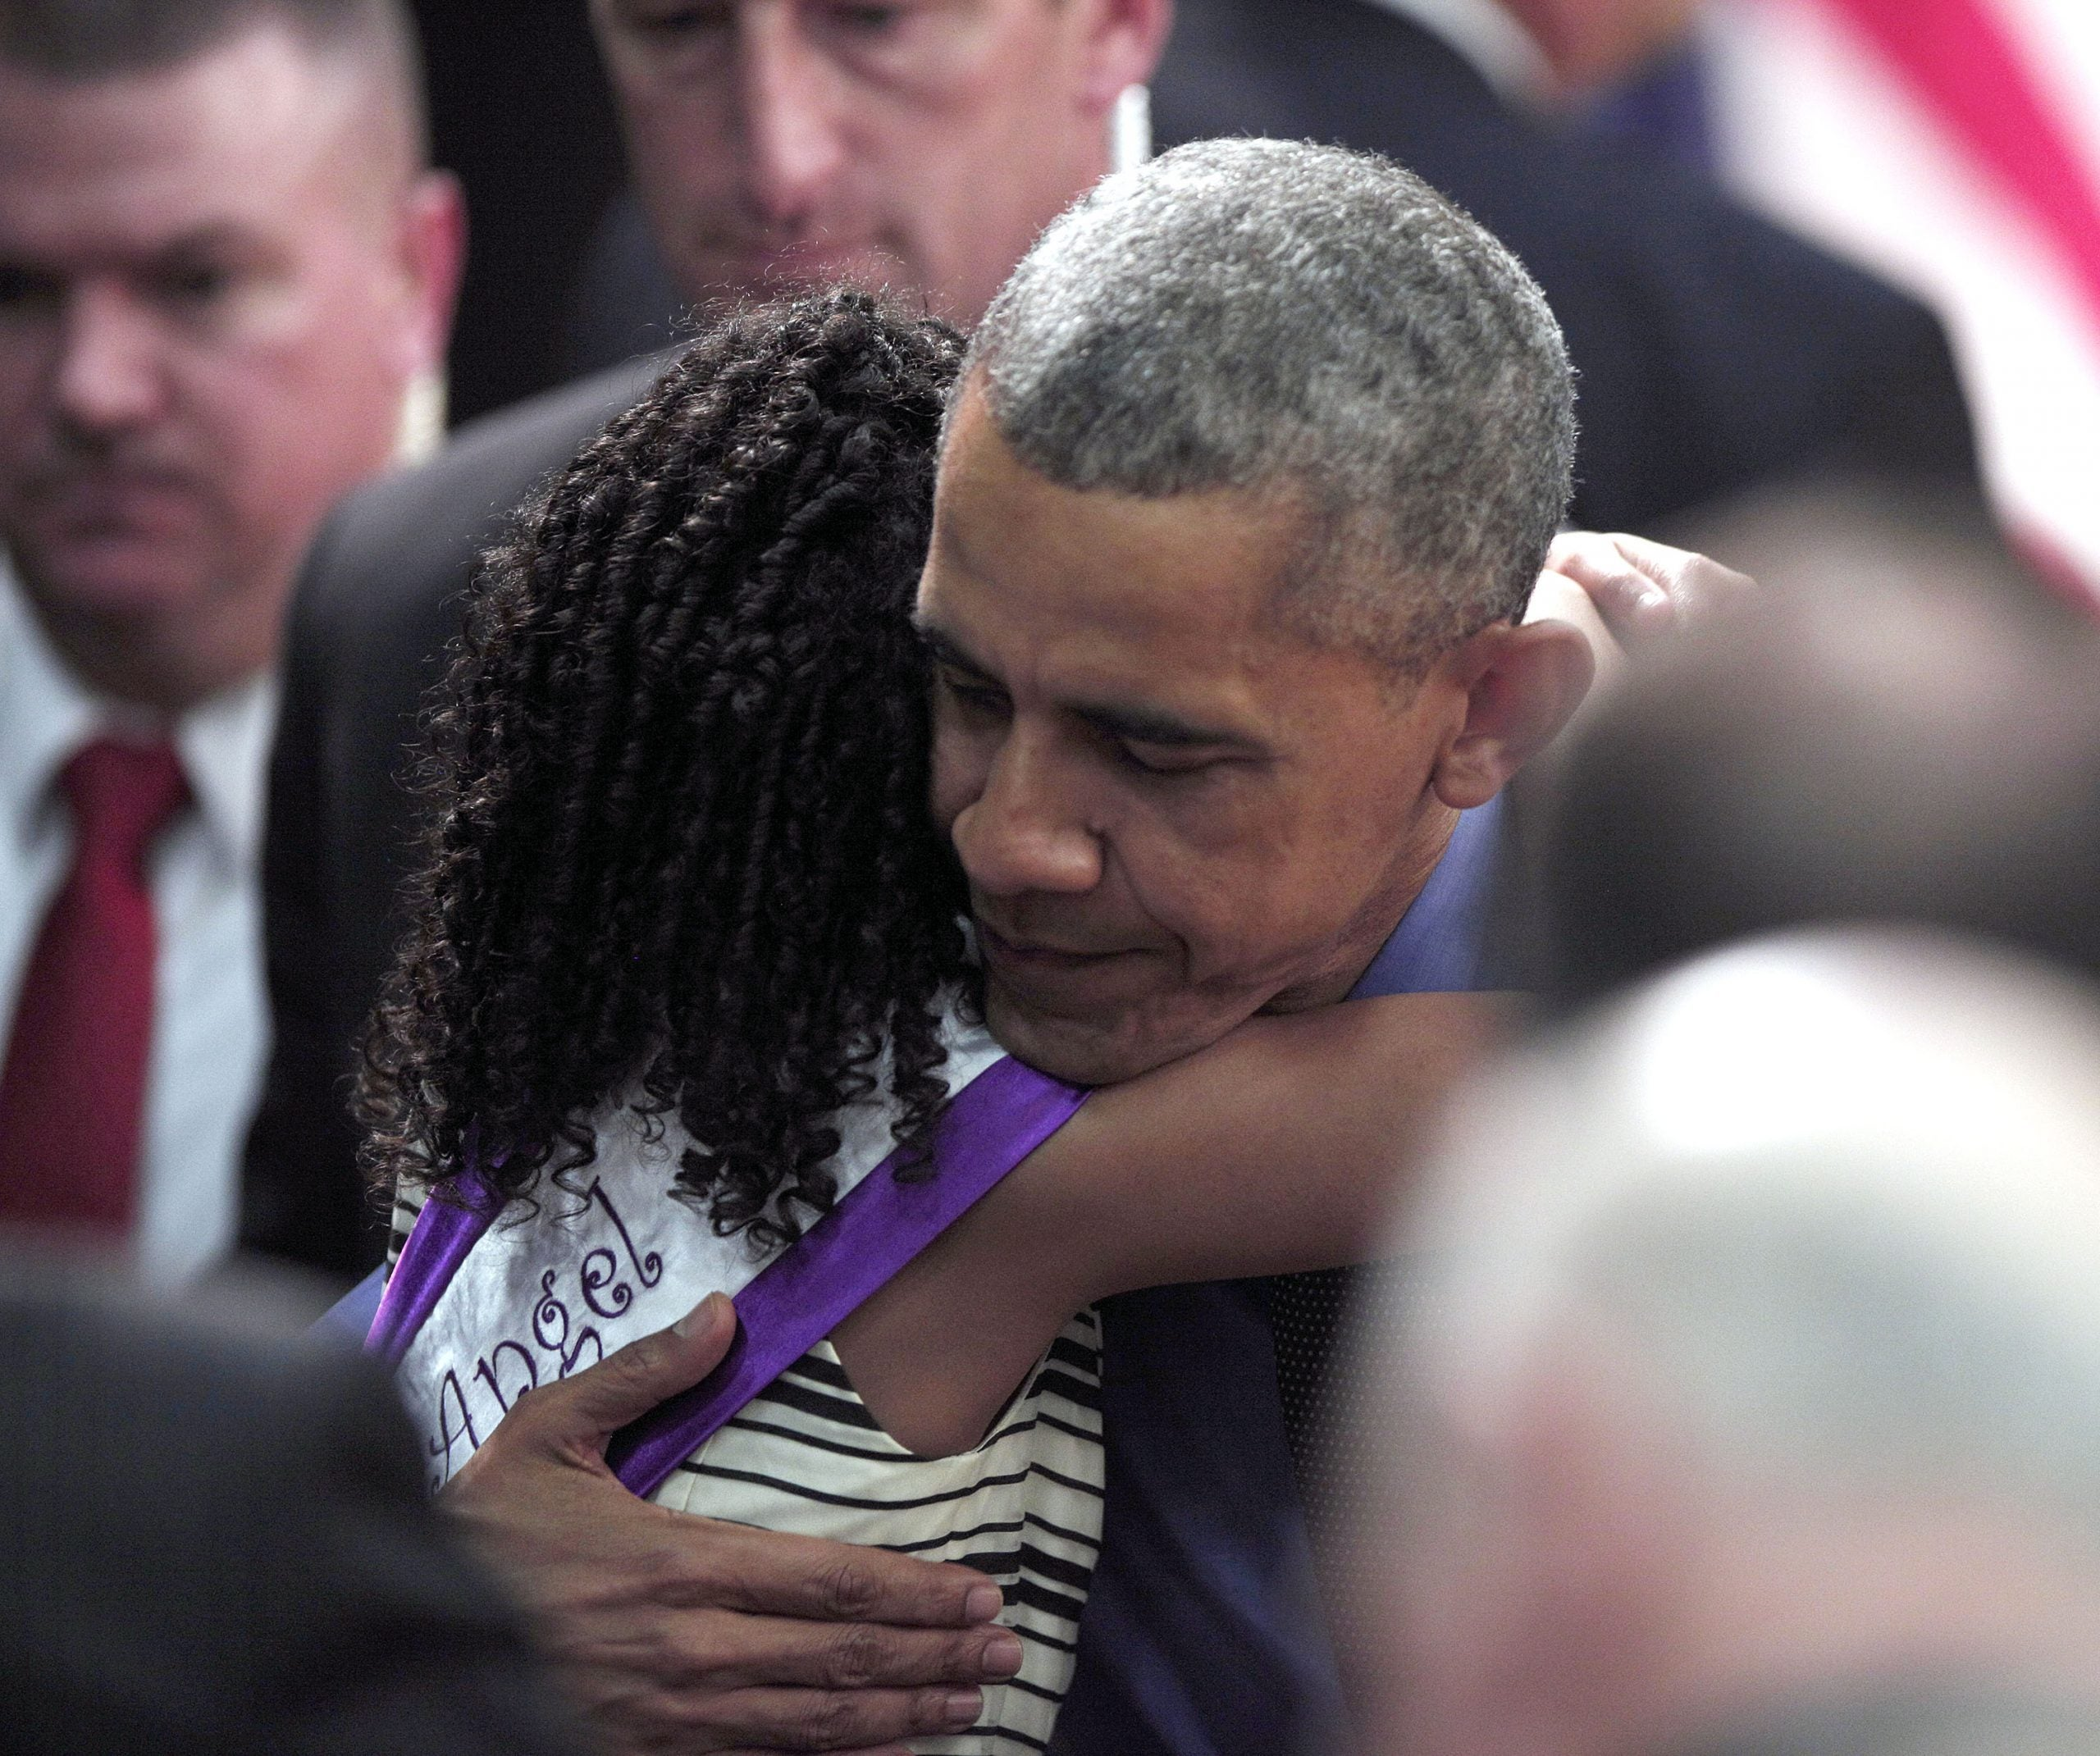 U.S. President Barack Obama hugs Maryanna Copeny of Flint, Michigan, age 8, after speaking at Northwest High School about the Flint water contamination crisis on May 4, 2016 in Flint, Michigan.